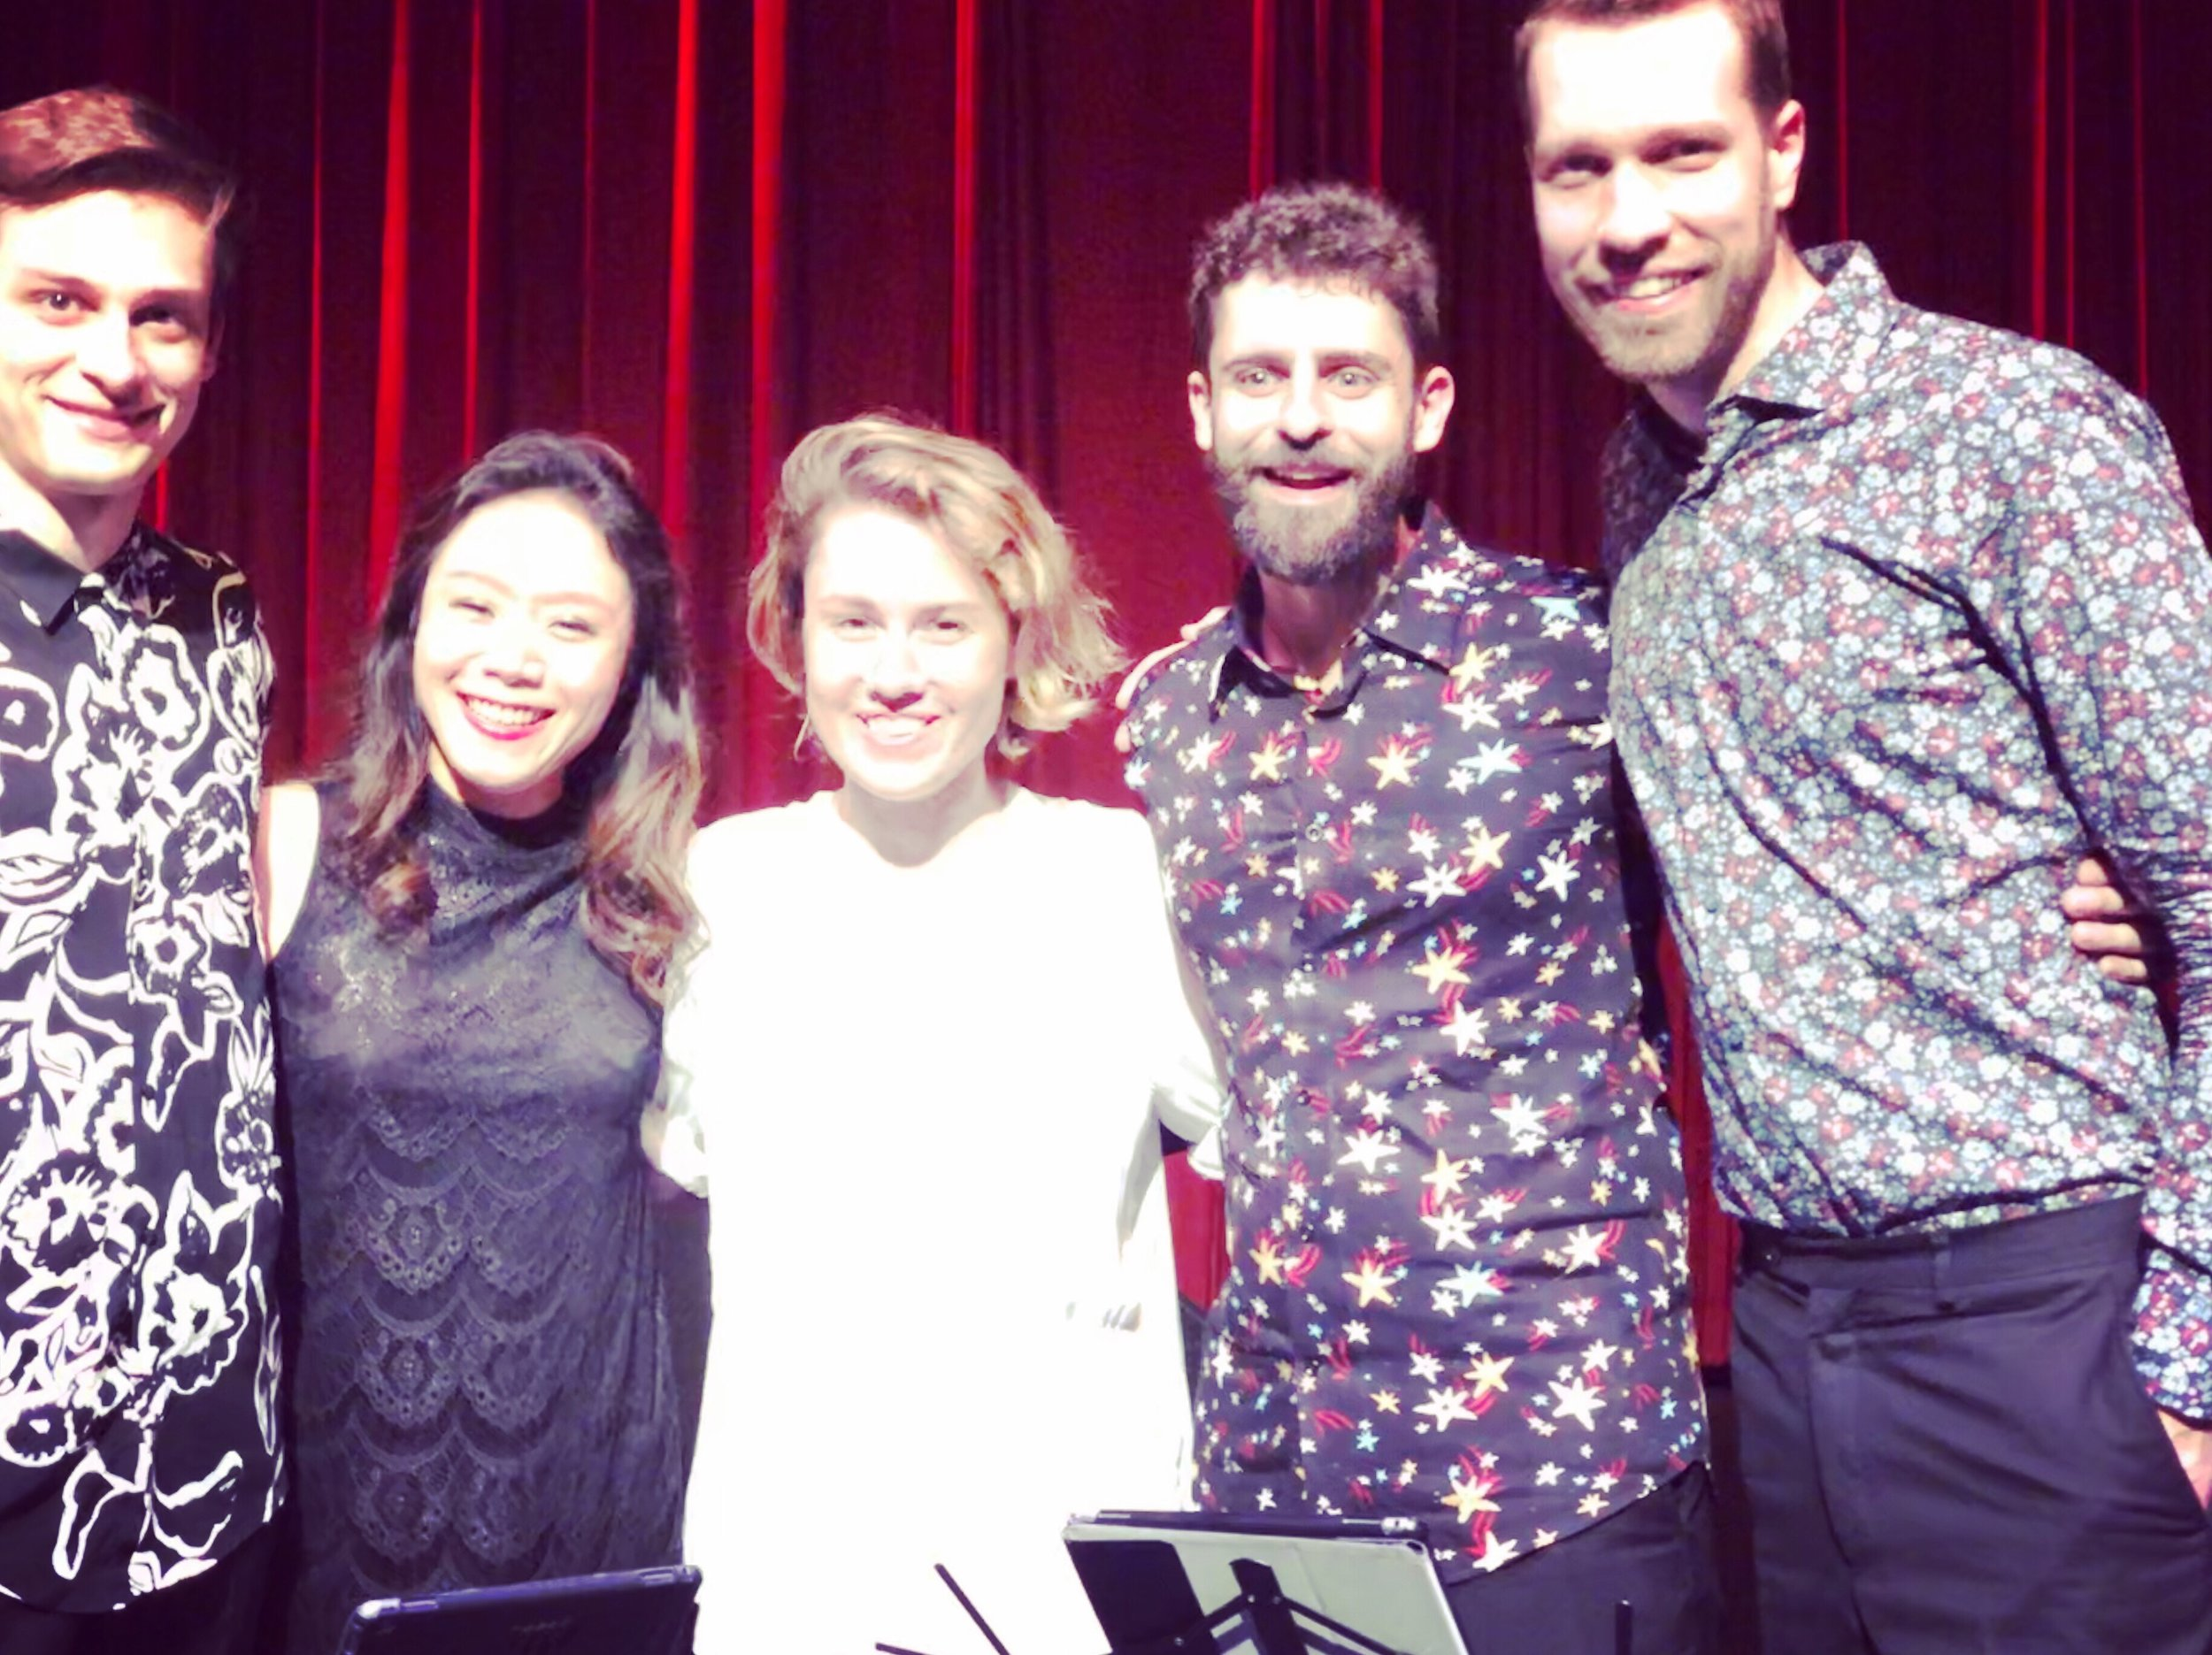 It was a complete coincidence that Caroline Shaw was also in Vancouver when we played two of her quartets at Music on Main!